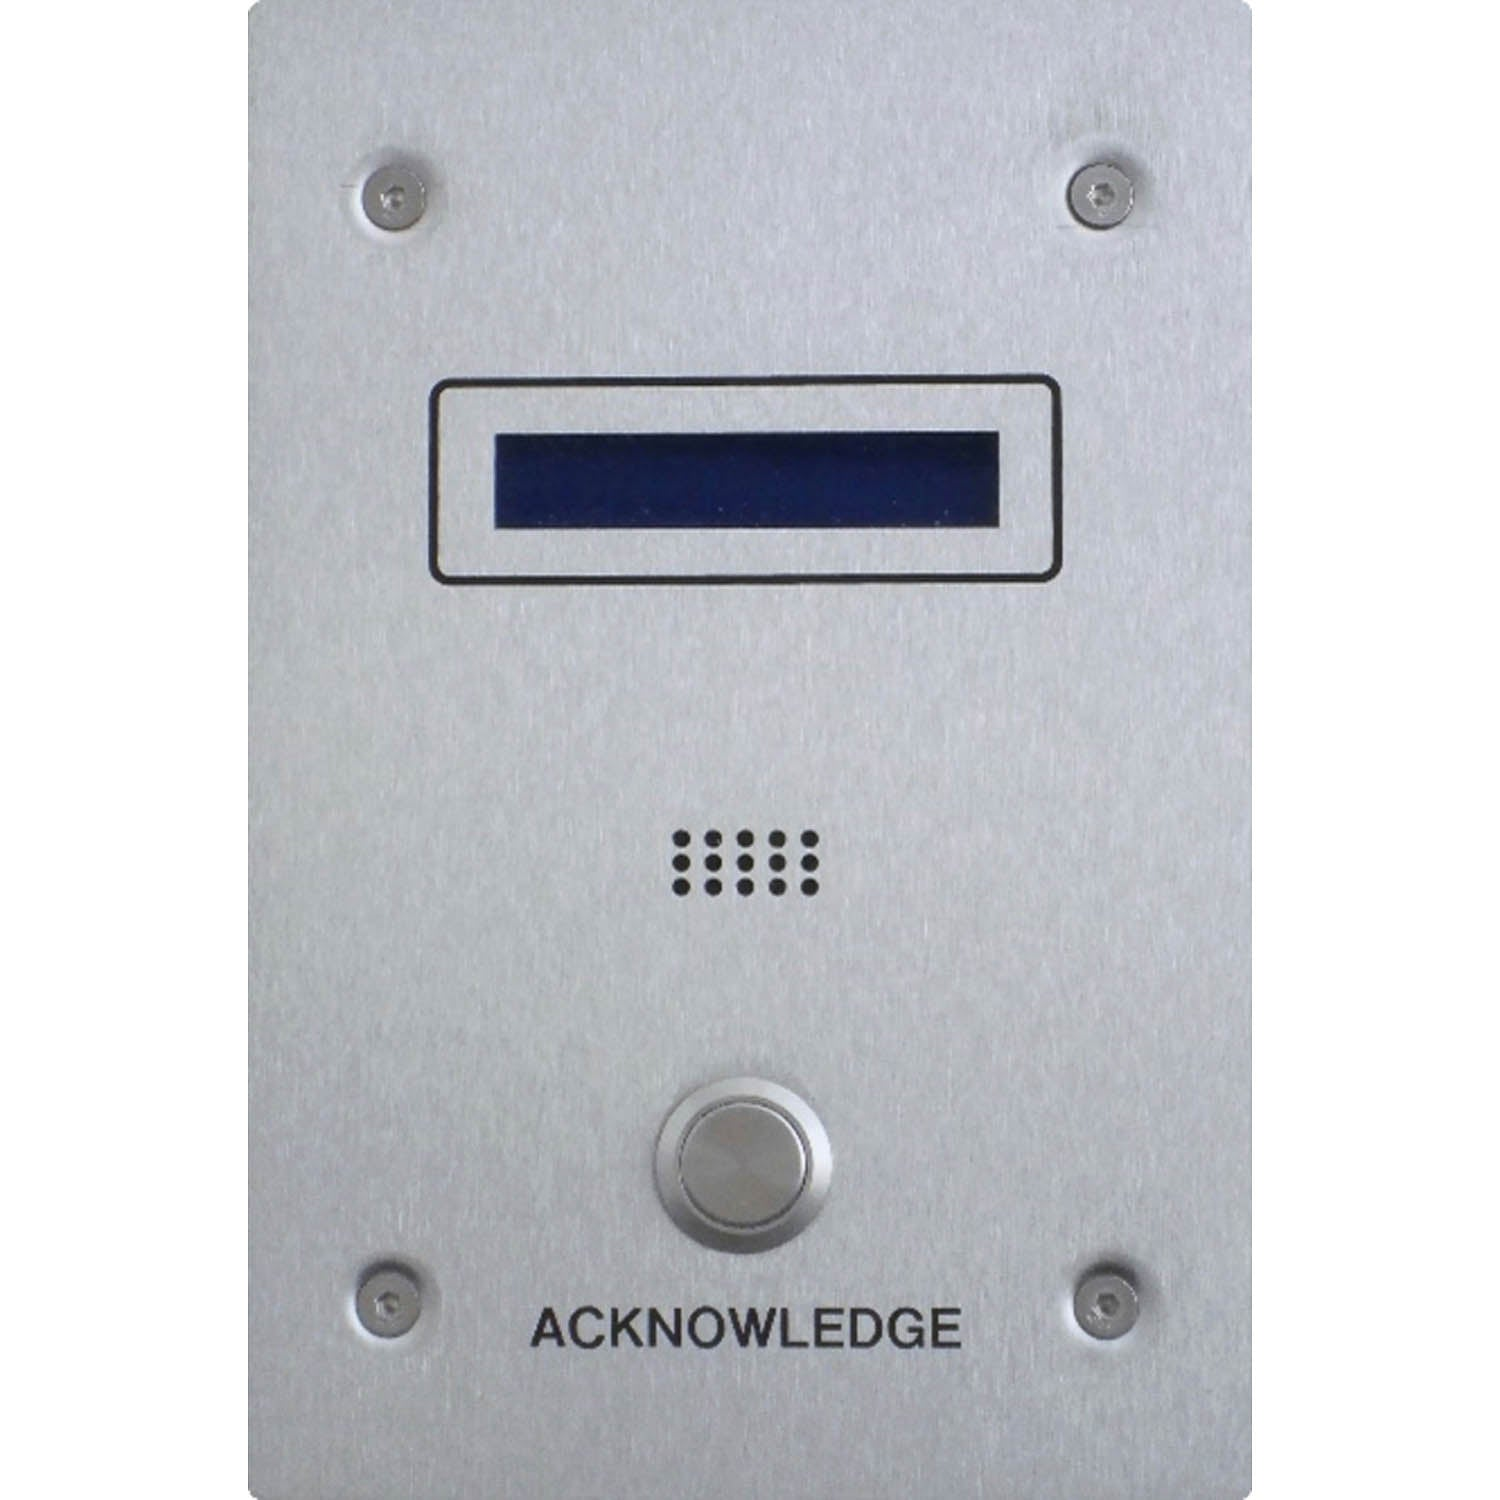 Stainless Steel Spot Alarm LCD Acknowledge Panel on a white background